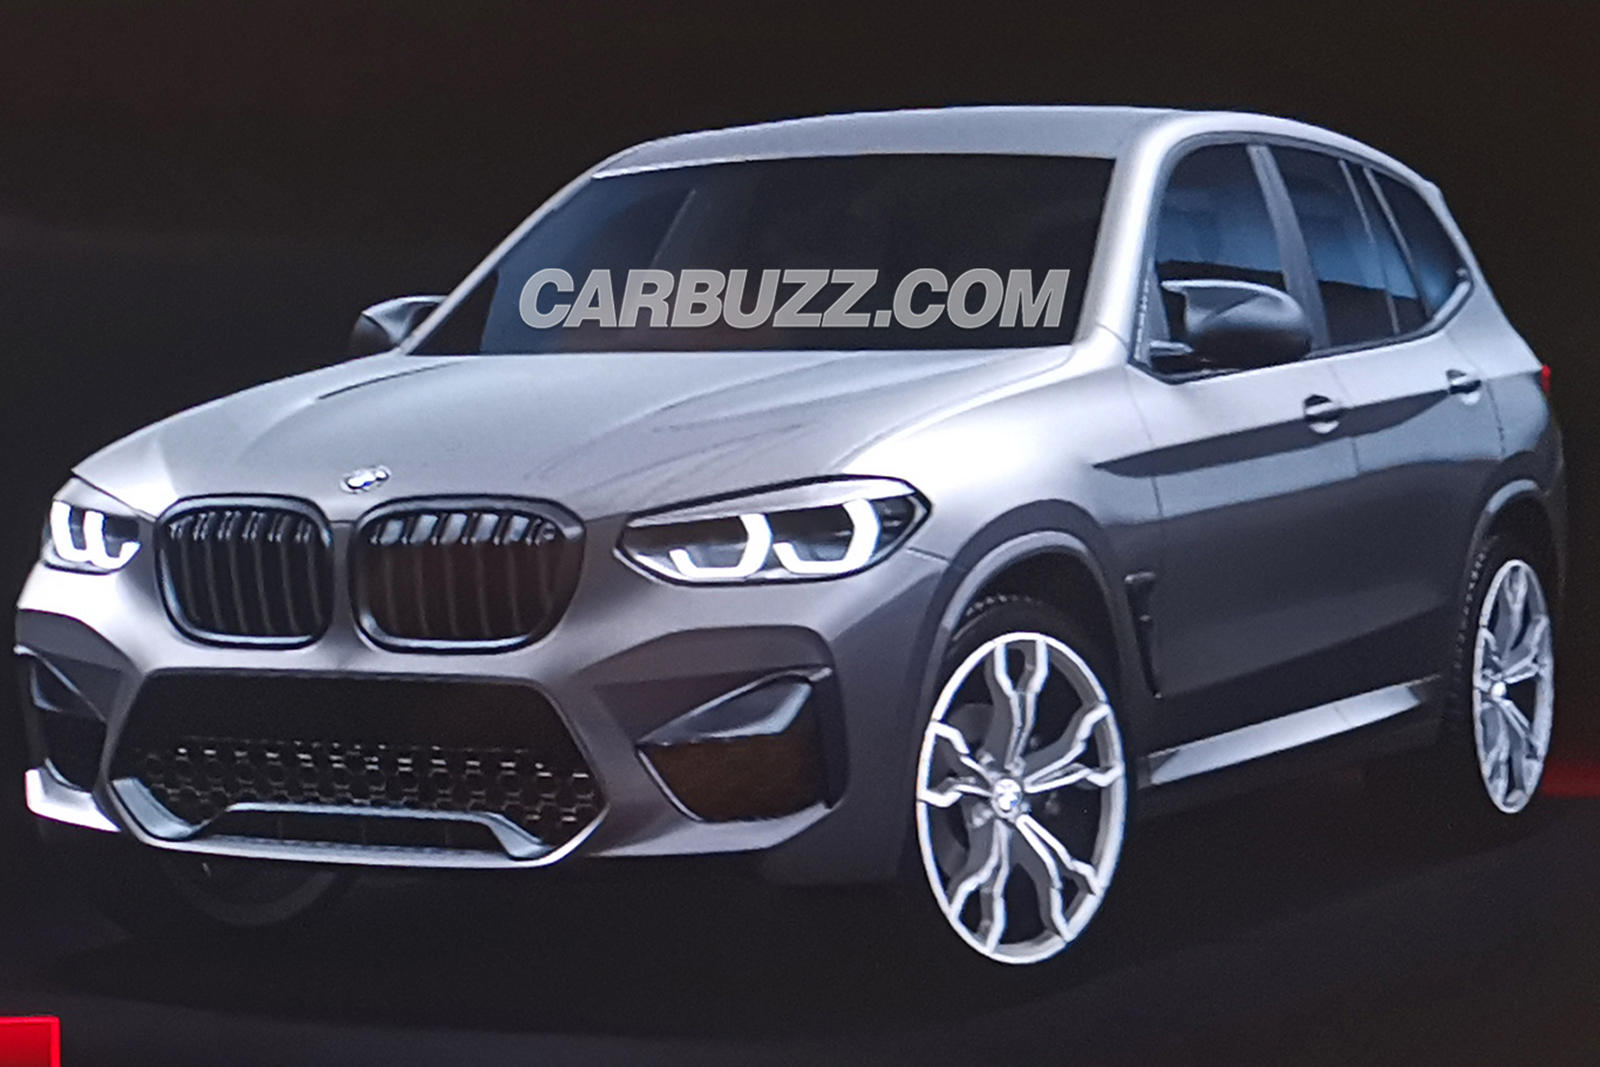 Leaked This Is The 2020 Bmw X3 M Carbuzz